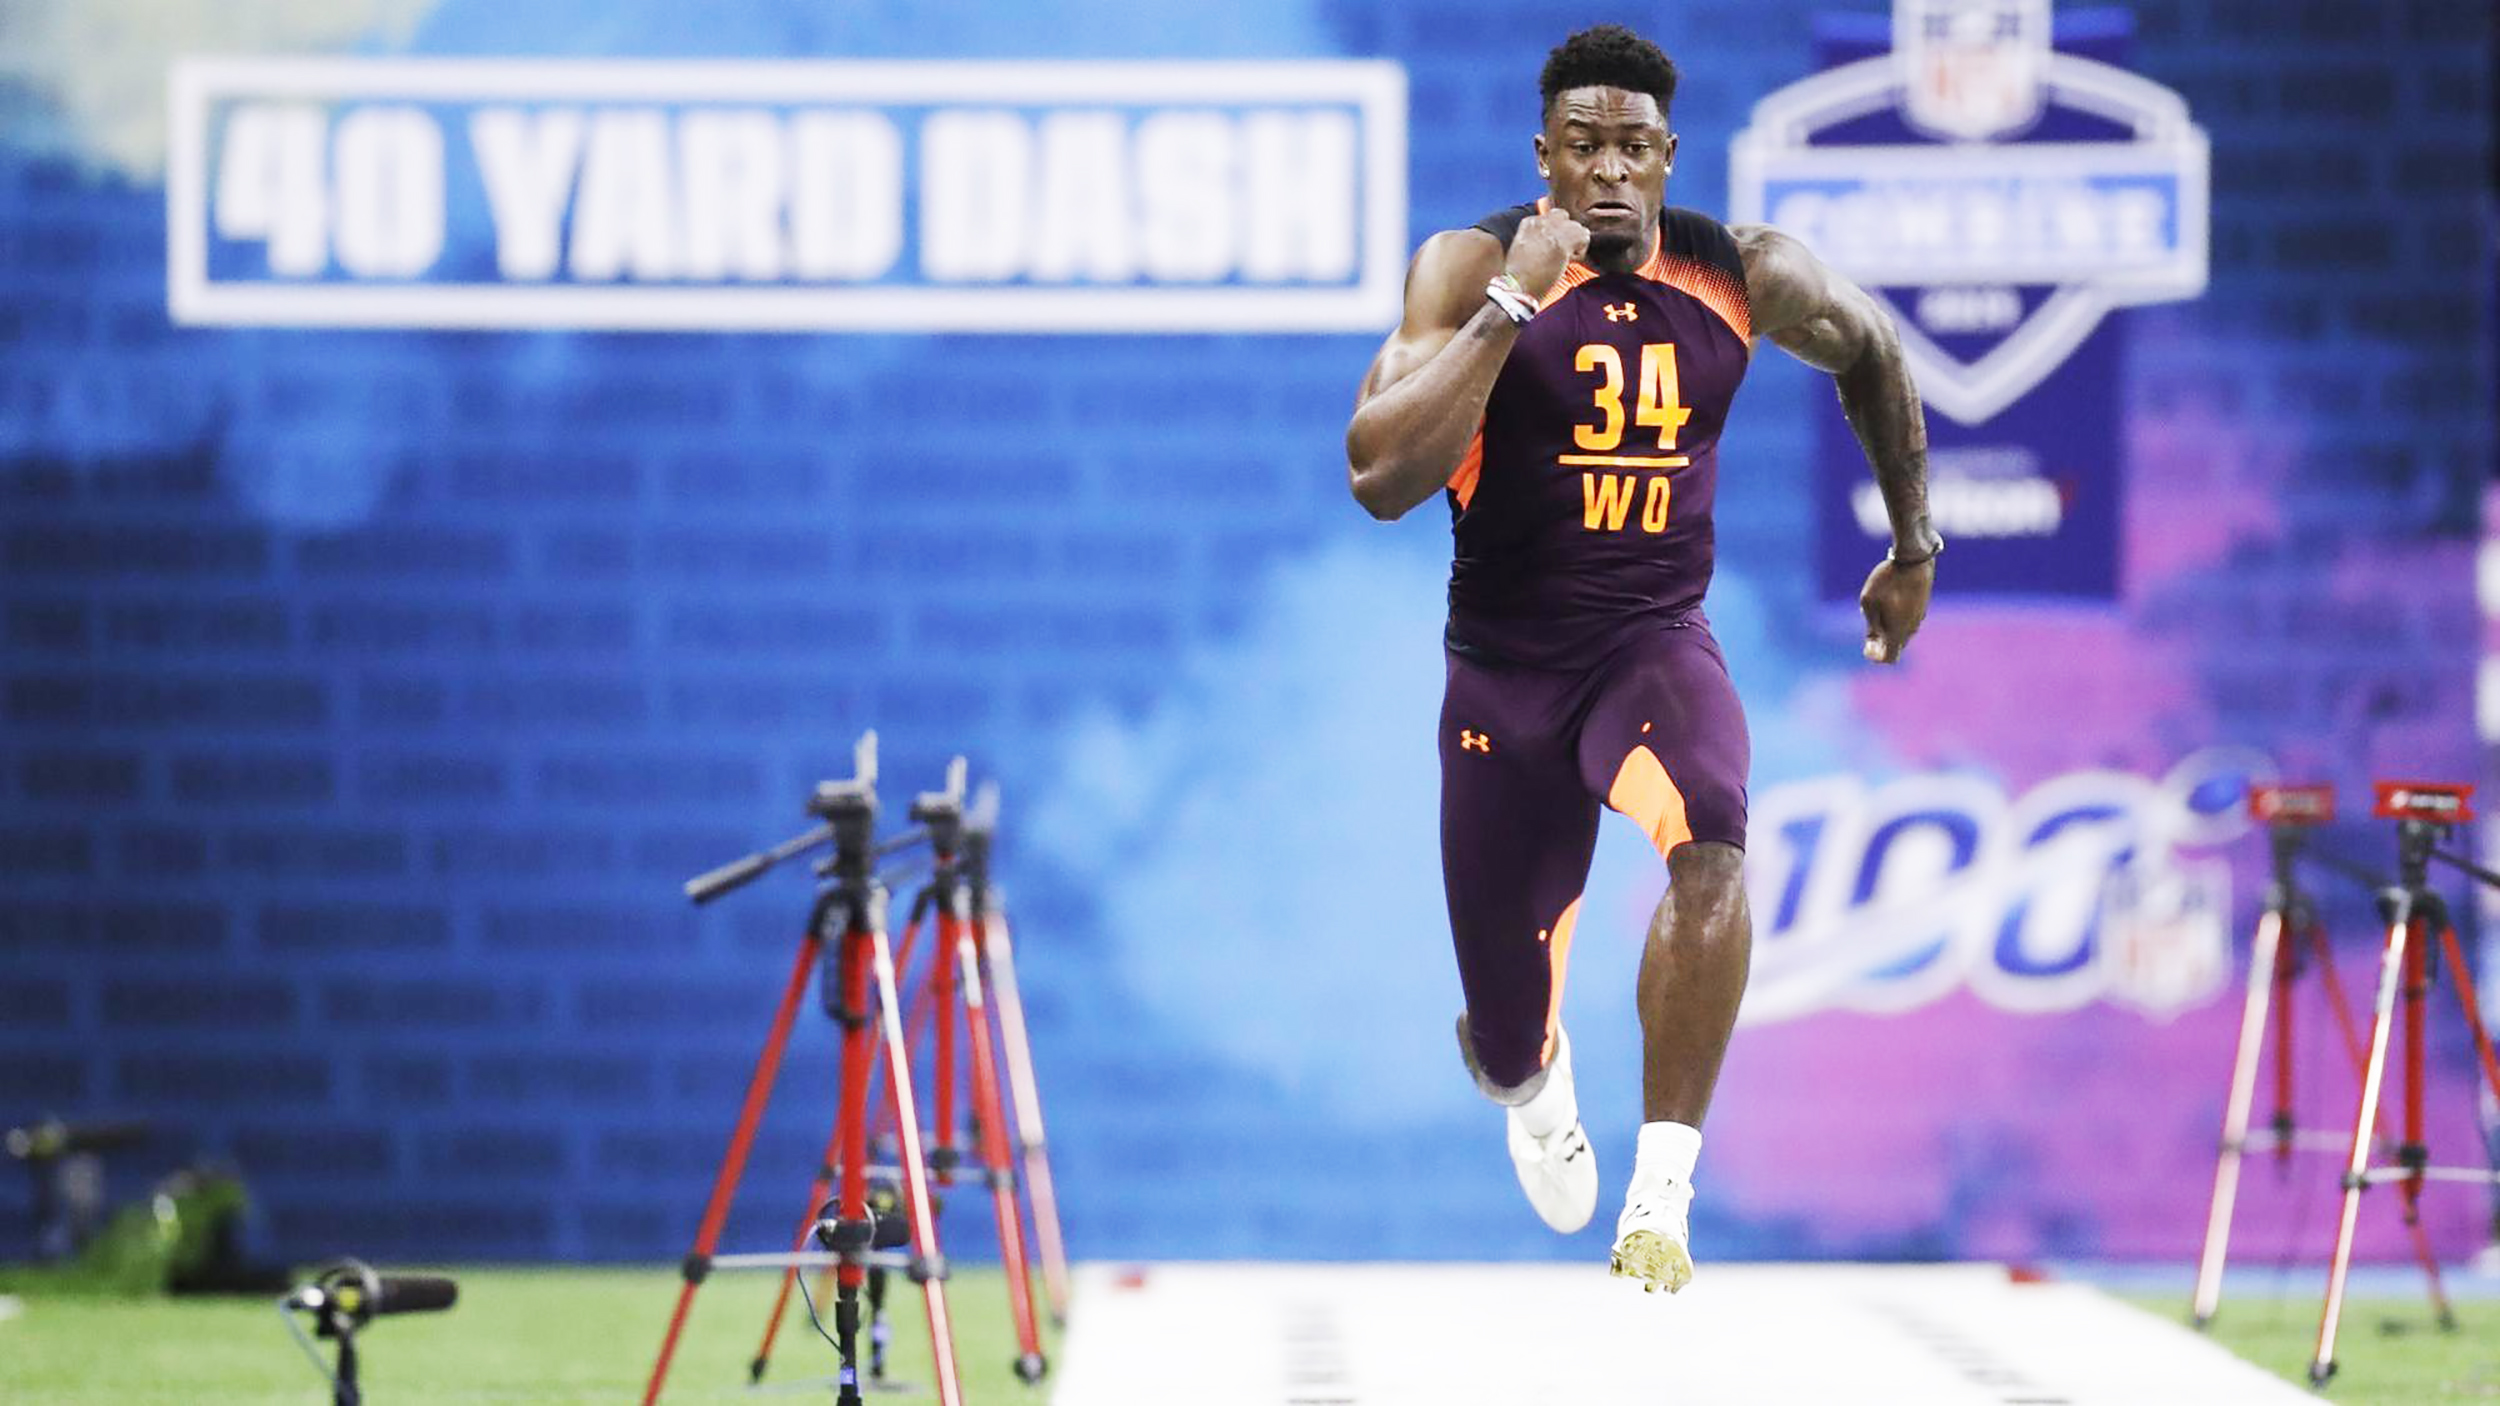 Wide receiver DeKaylin Metcalf (pictured above) ran the 40-yard dash at the NFL combine on Saturday March 2. Metcalf finished the physical test with an impressive time of 4.33 seconds (courtesy of Creative Commons).